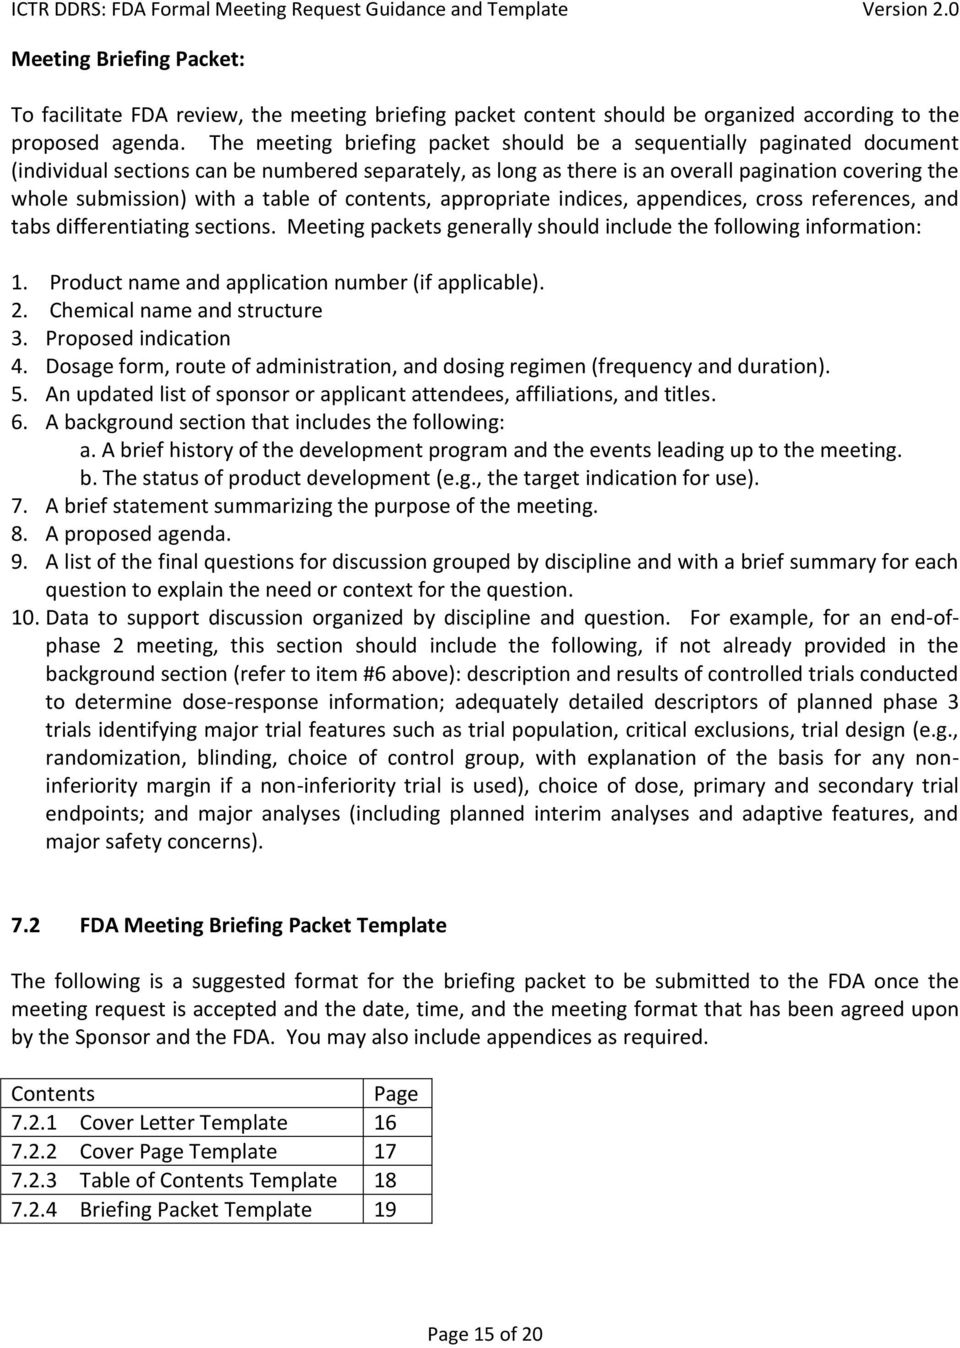 formal fda meeting request guidance and template pdf